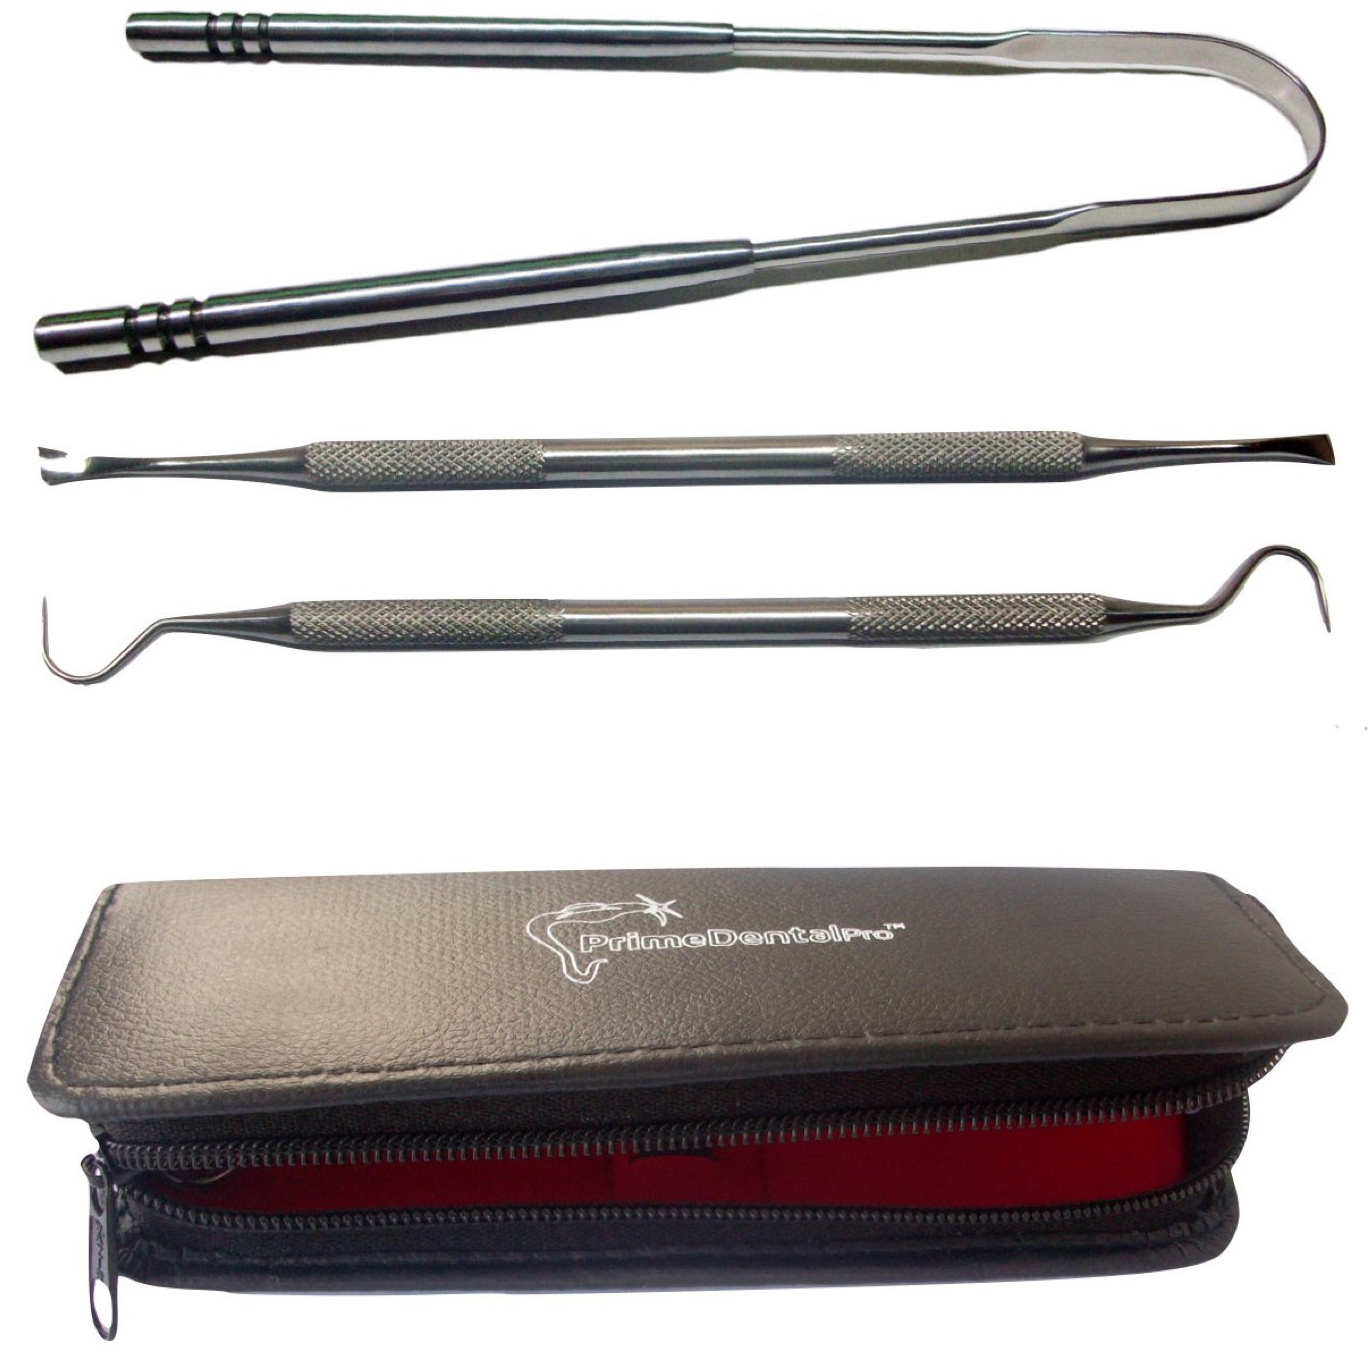 Tongue Scraper and Dental Tools Kit Stainless Steel Set 670031c00530